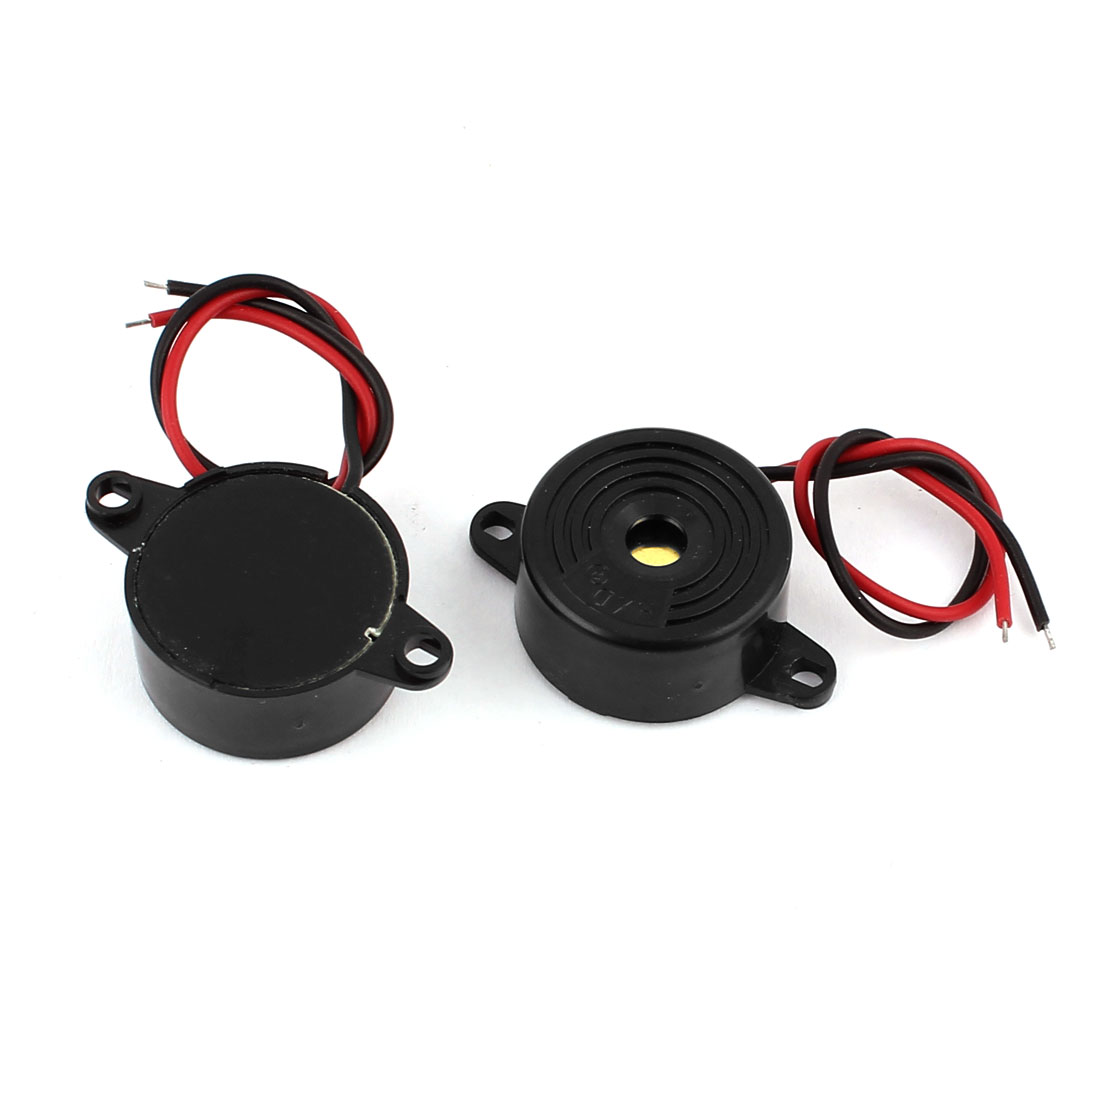 2 Pcs DC24V 2-Wired Miniature Continuous Sound Electronic Alarm Buzzer Black